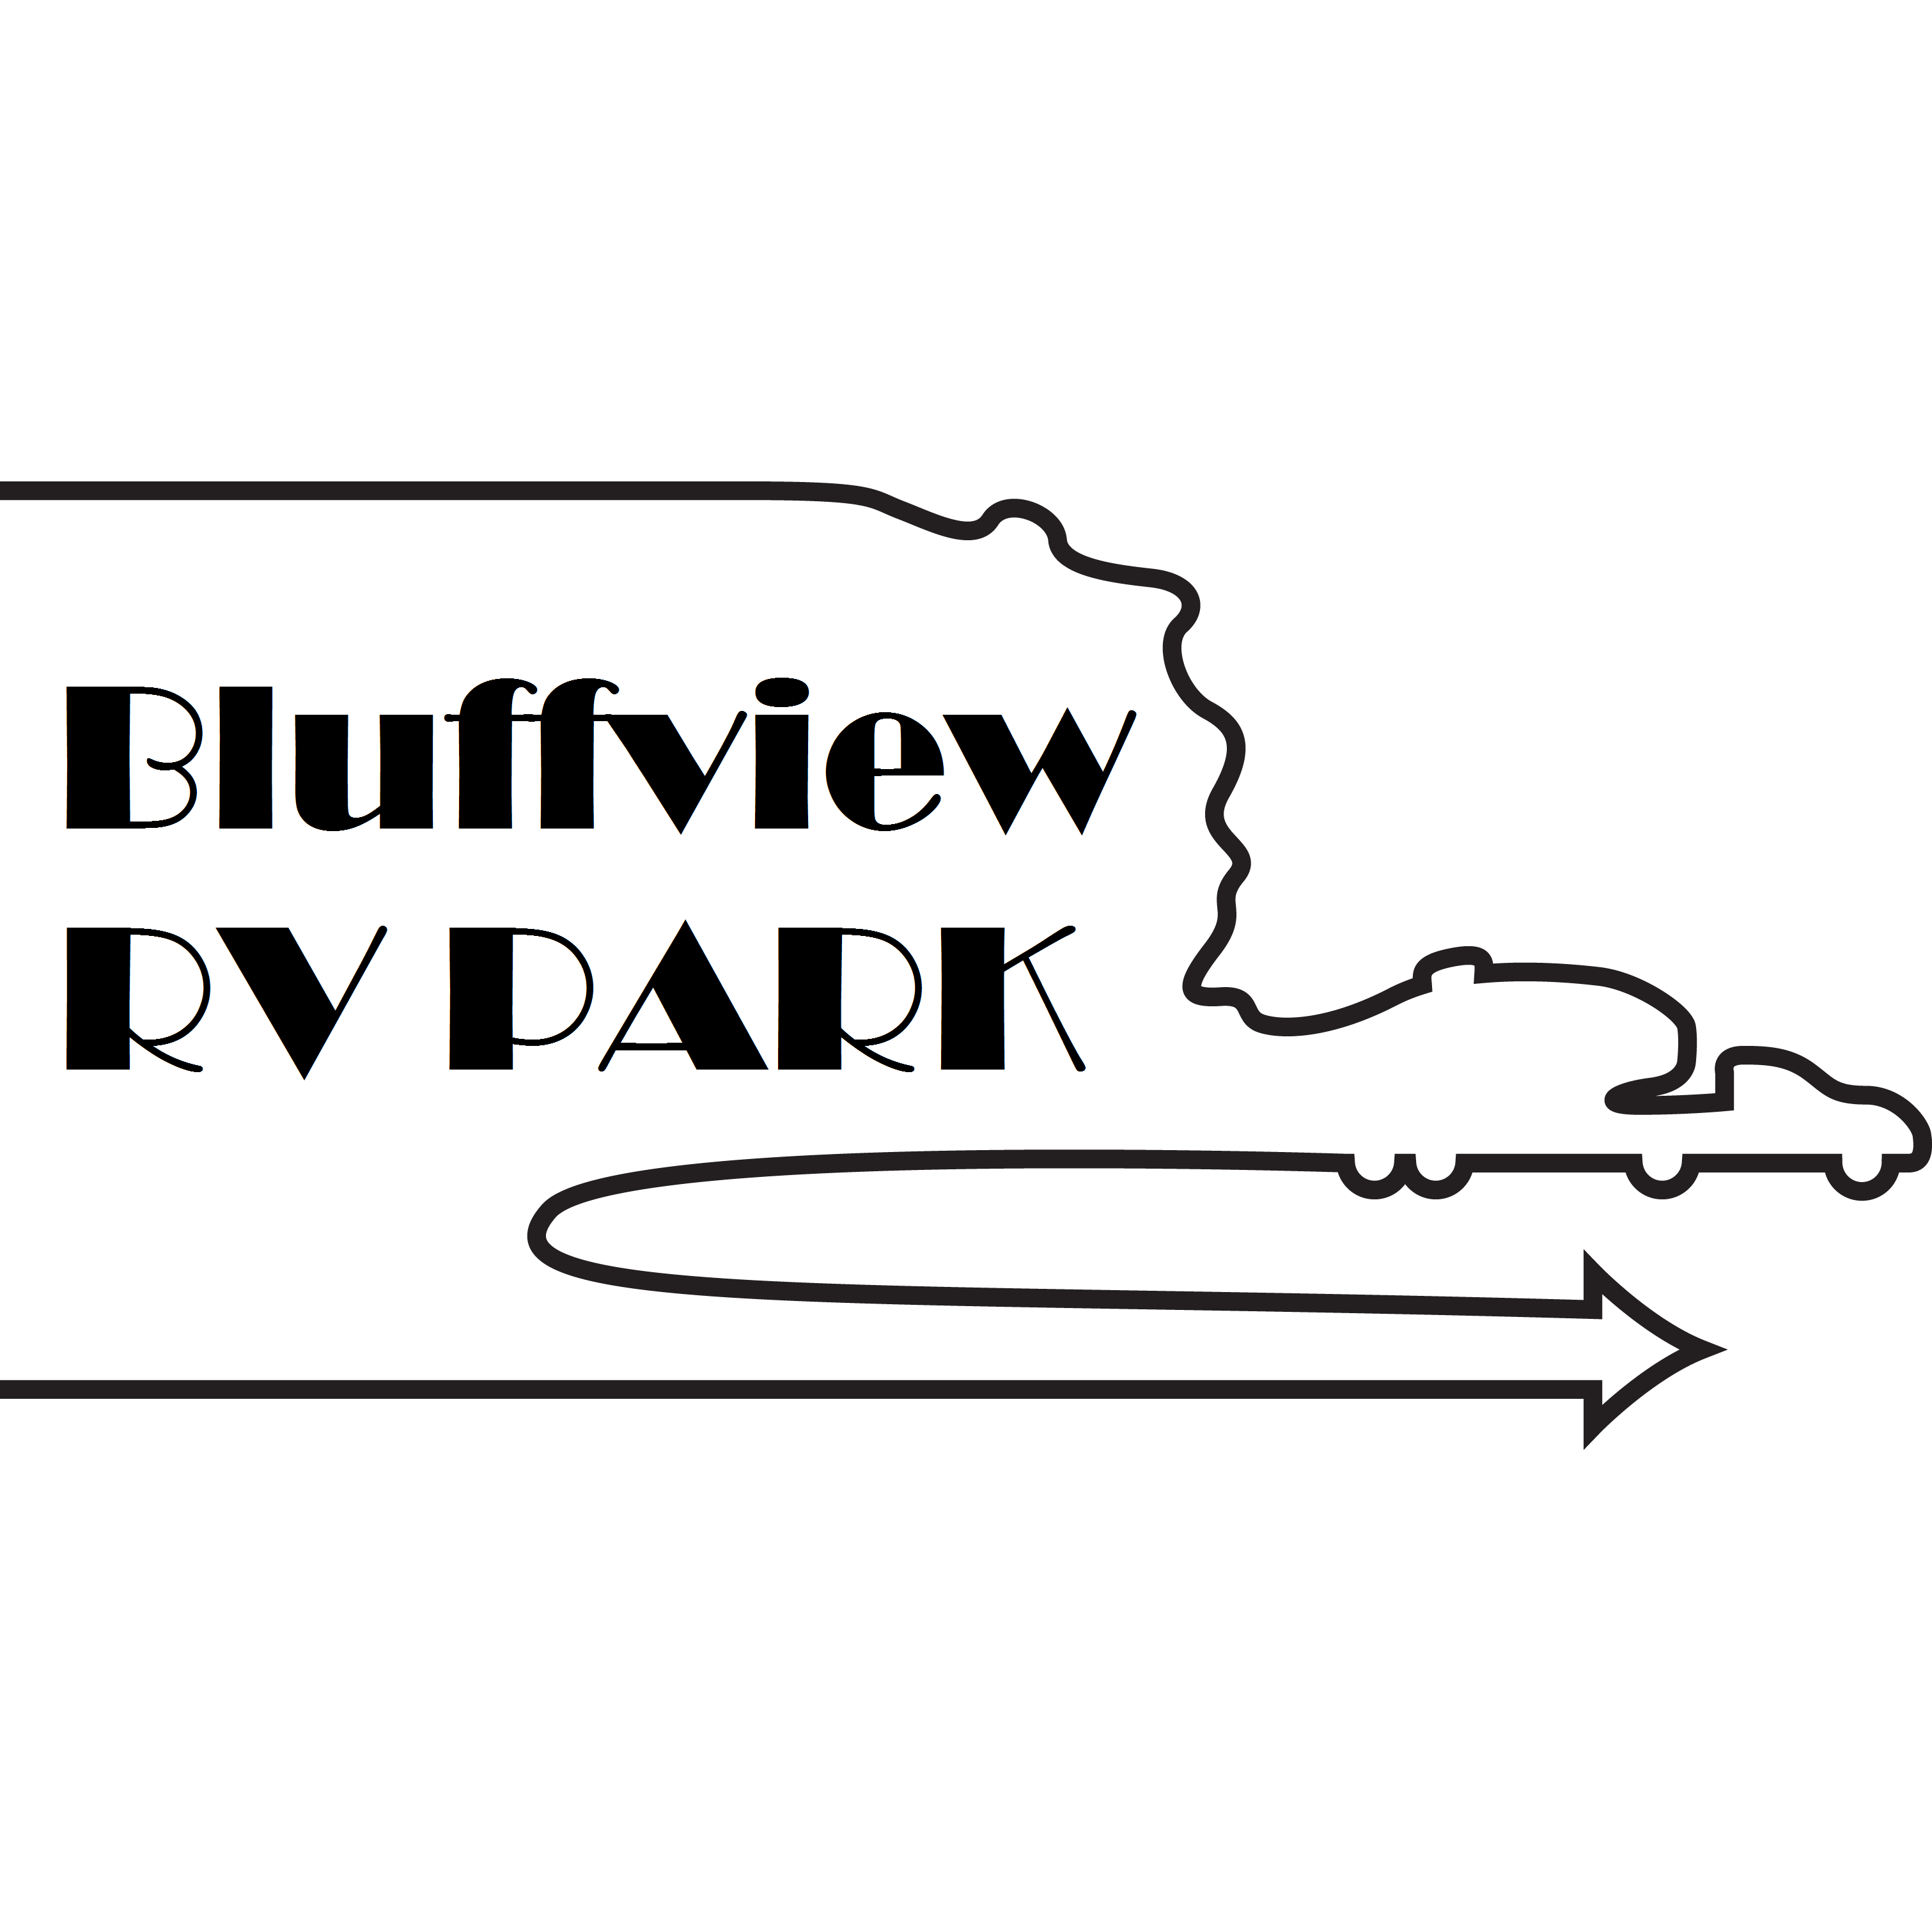 Bluffview RV Park image 1